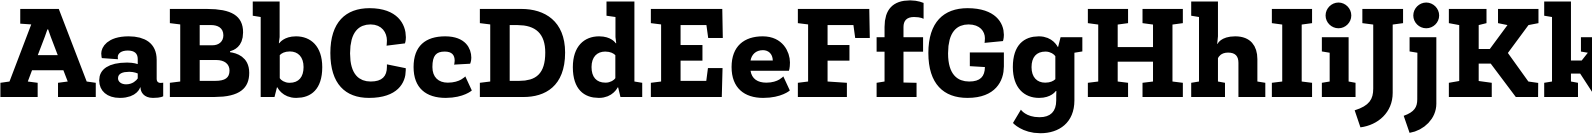 Roble ExtraBold Font